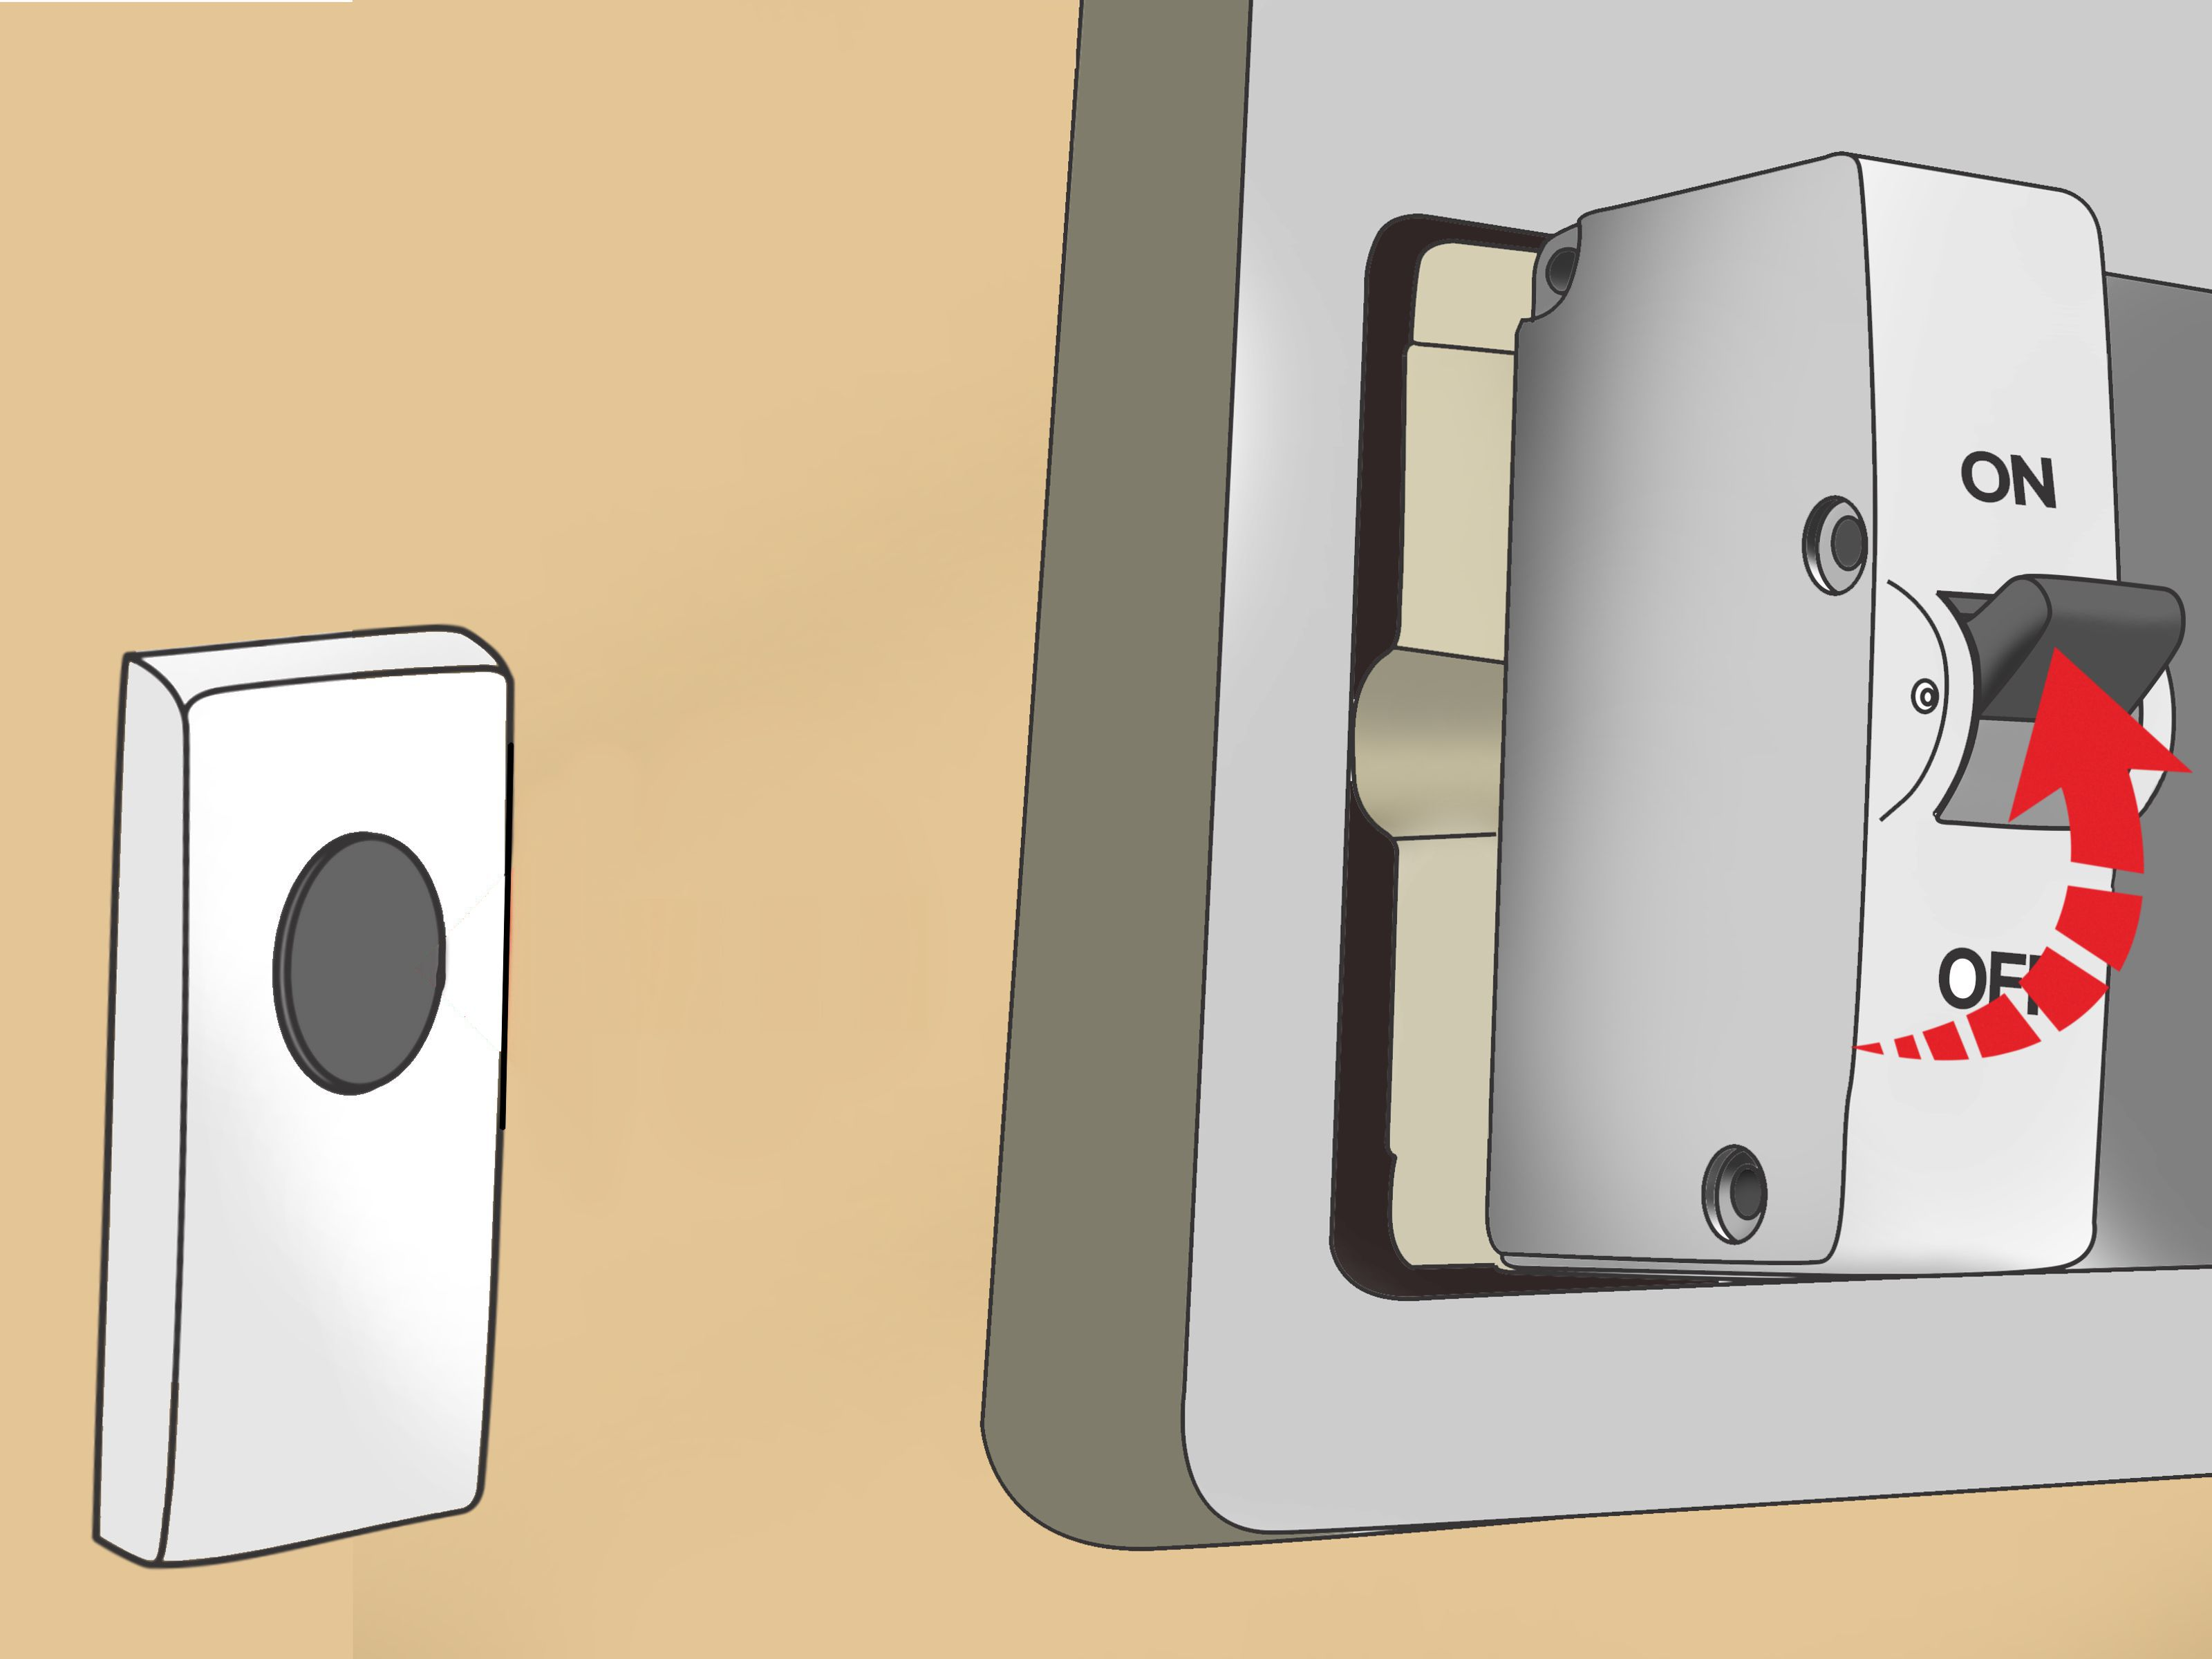 Haustürklingel Wikipedia How To Install A Doorbell 11 Steps With Pictures Wikihow